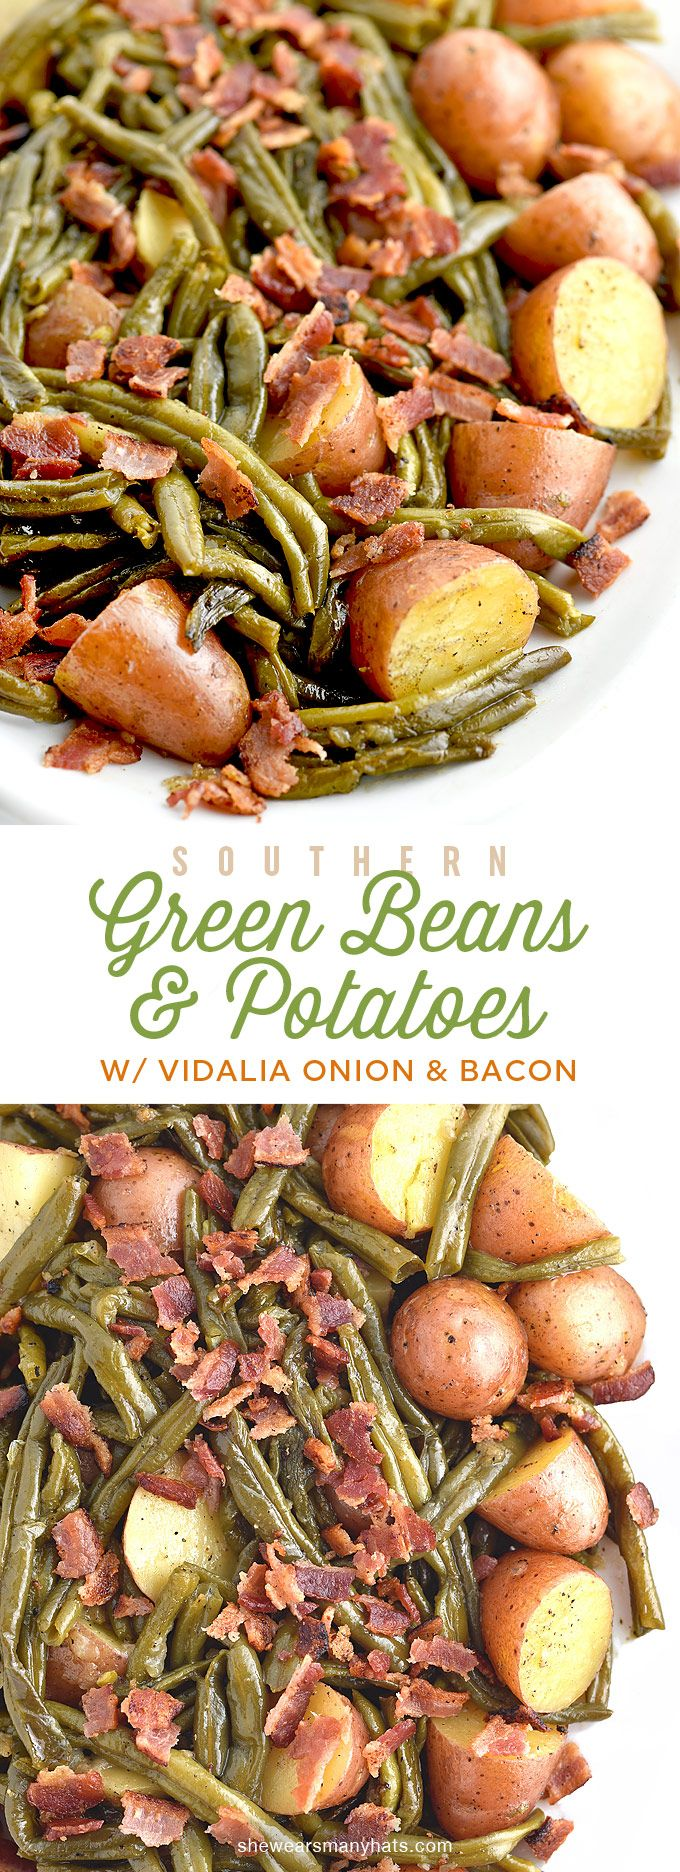 Southern Green Beans and Potatoes with Vidalia Onion and Bacon Recipe | shewearsmanyhats.com